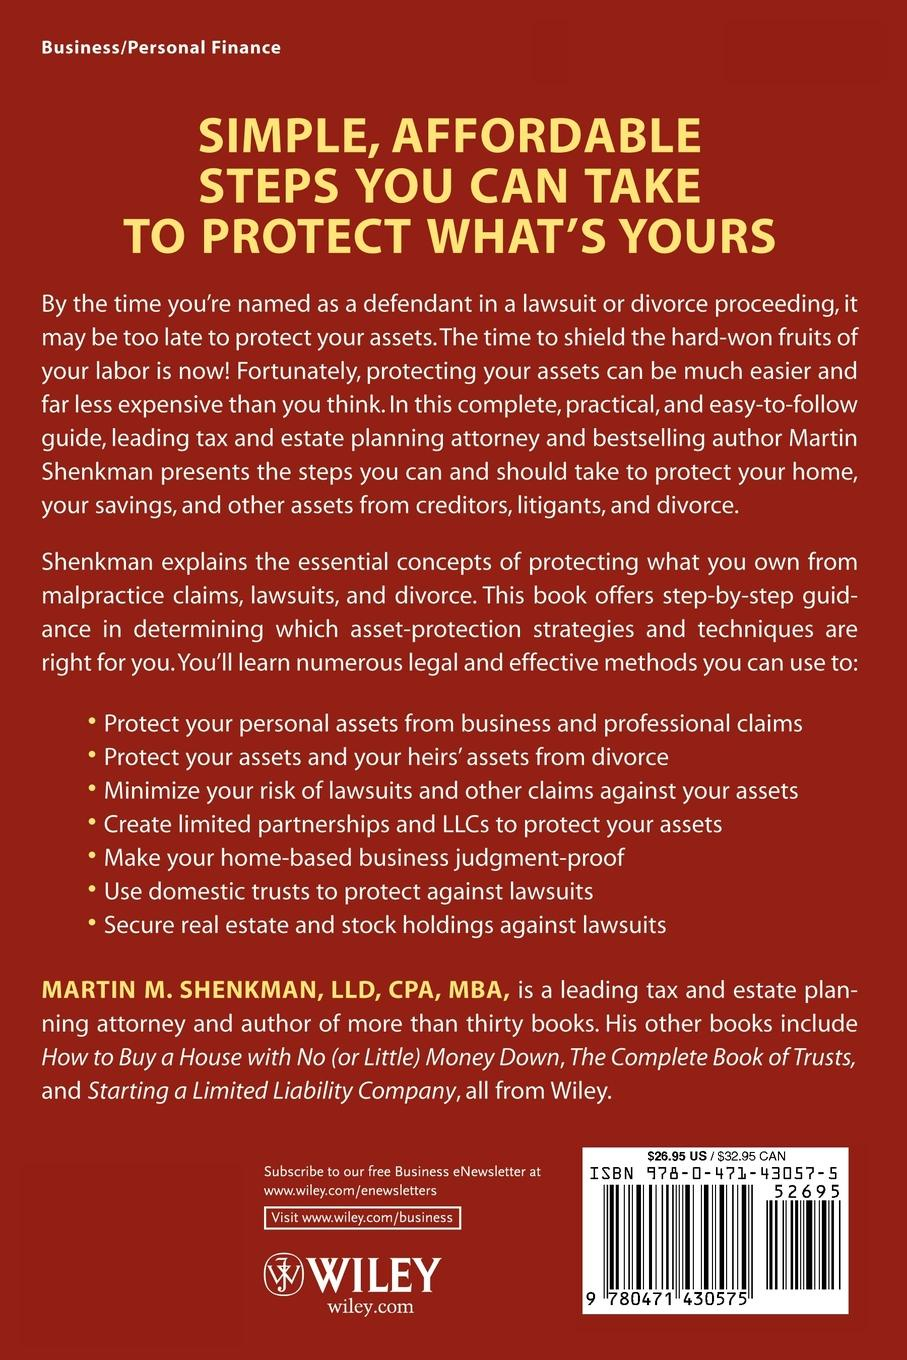 лучшая цена Martin M. Shenkman 6-Hour Guide to Protecting Your Assets. How to Protect Your Hard Earned Assets from Creditors and Claimants